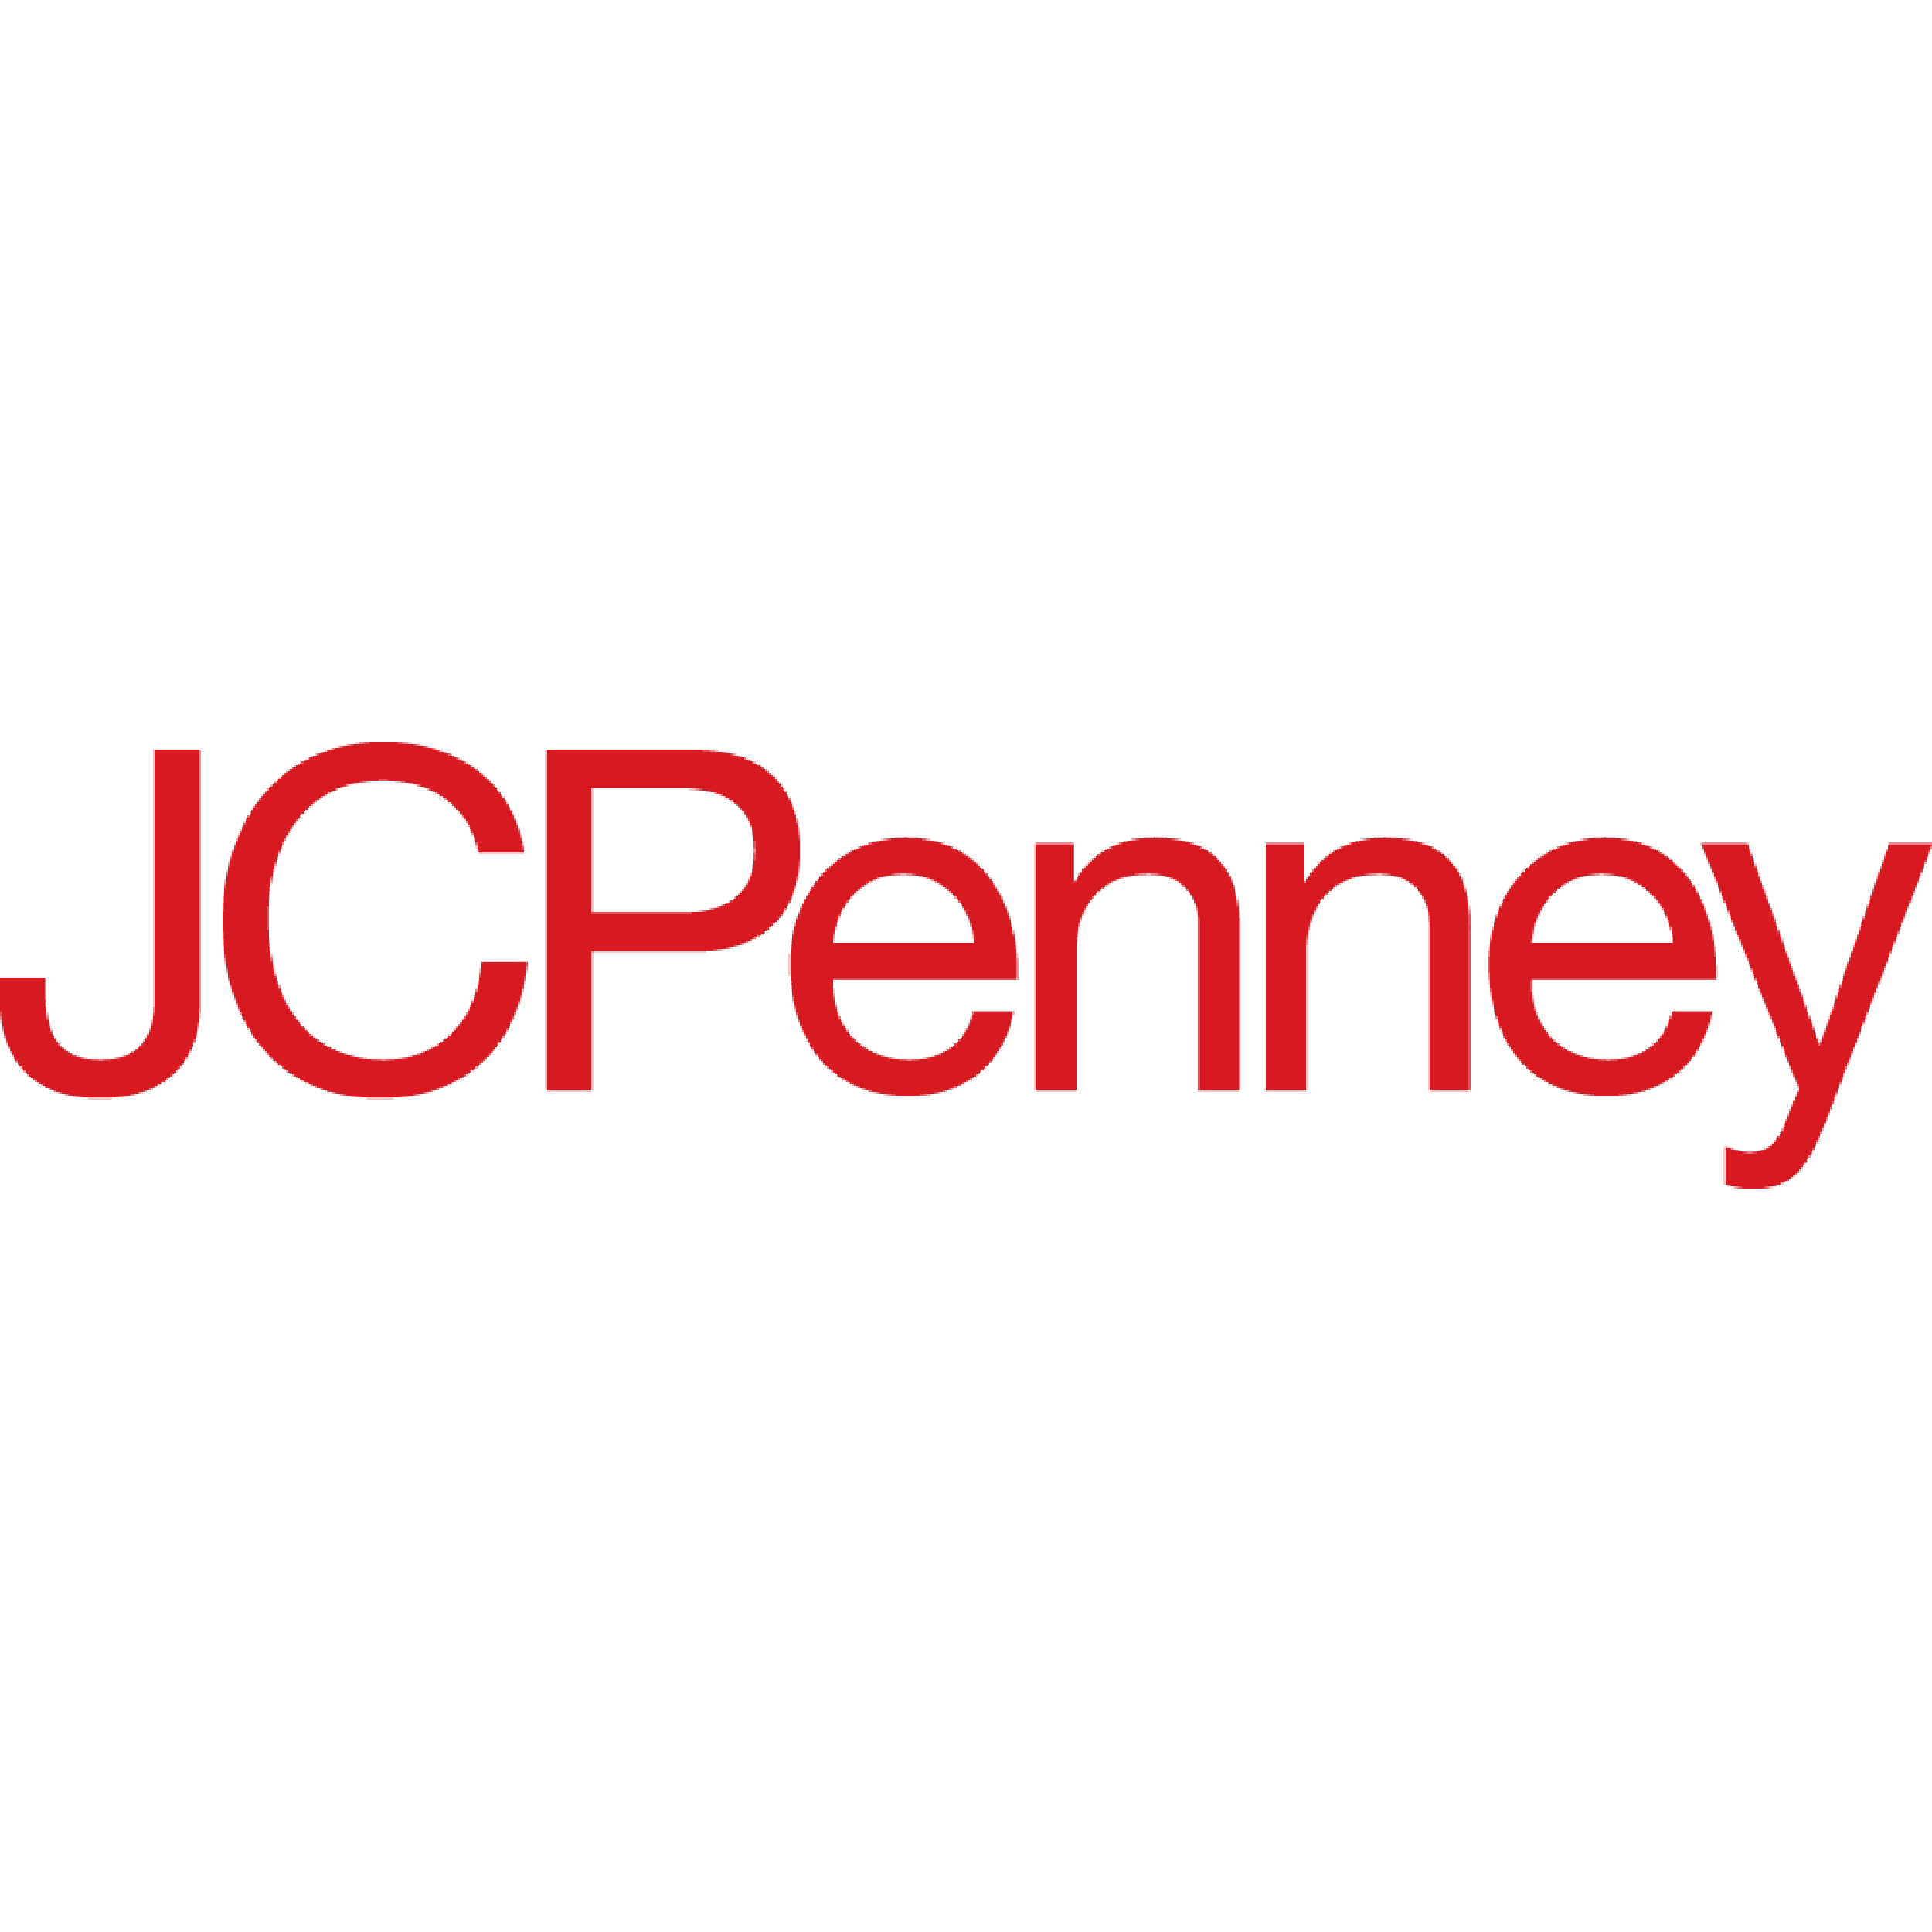 JCPenney - Raleigh, NC - Department Stores